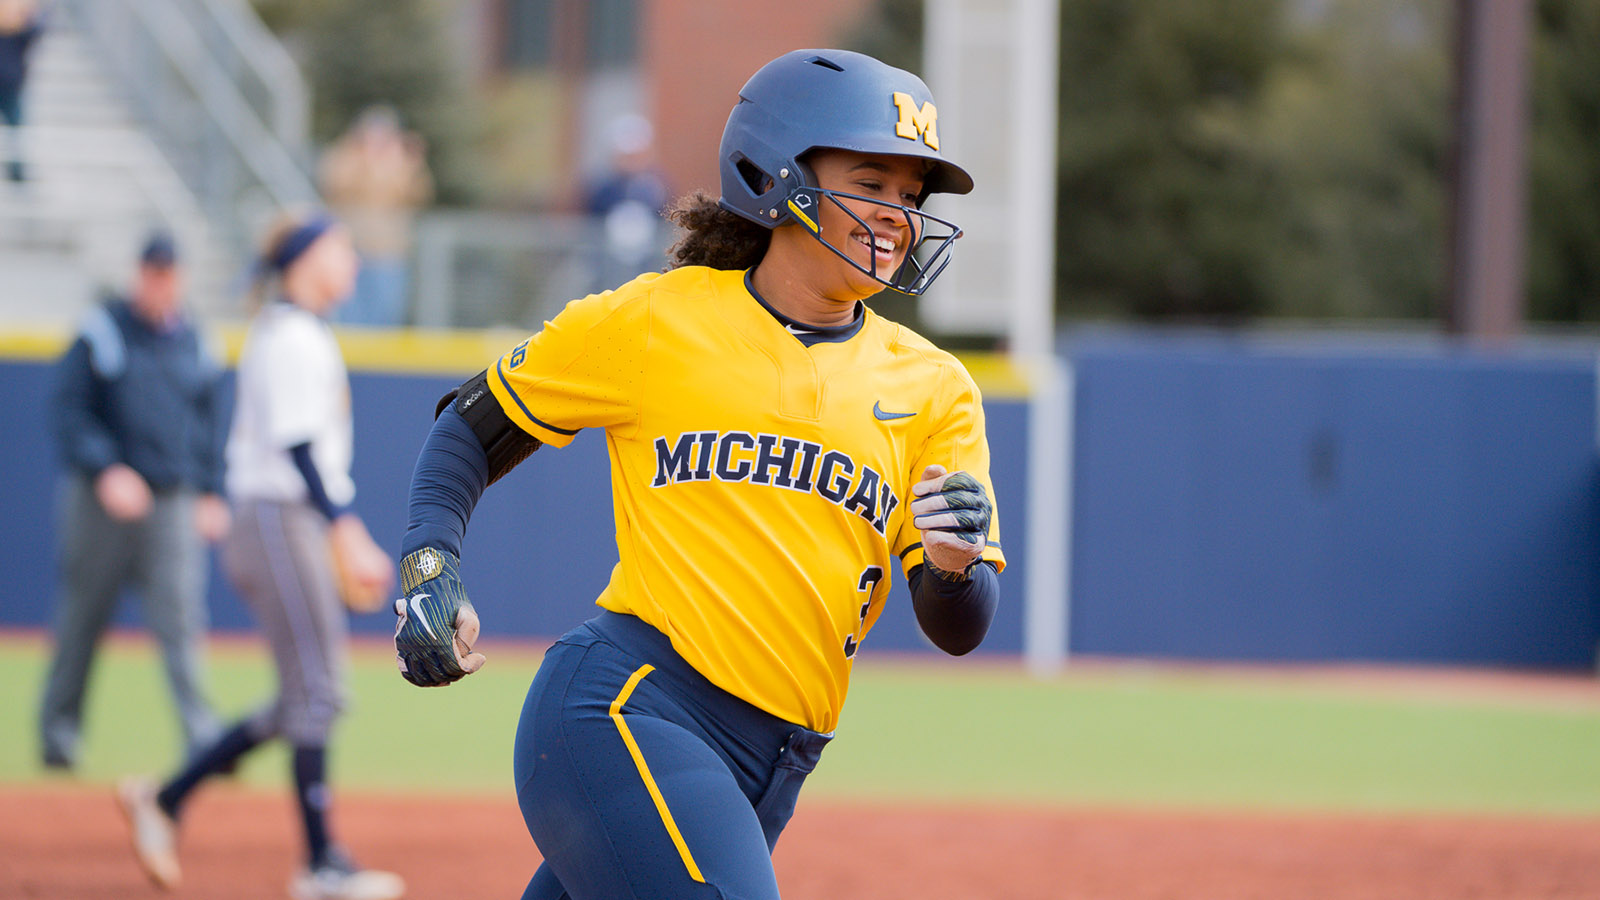 Winter Garden's own a powerhouse for Michigan softball